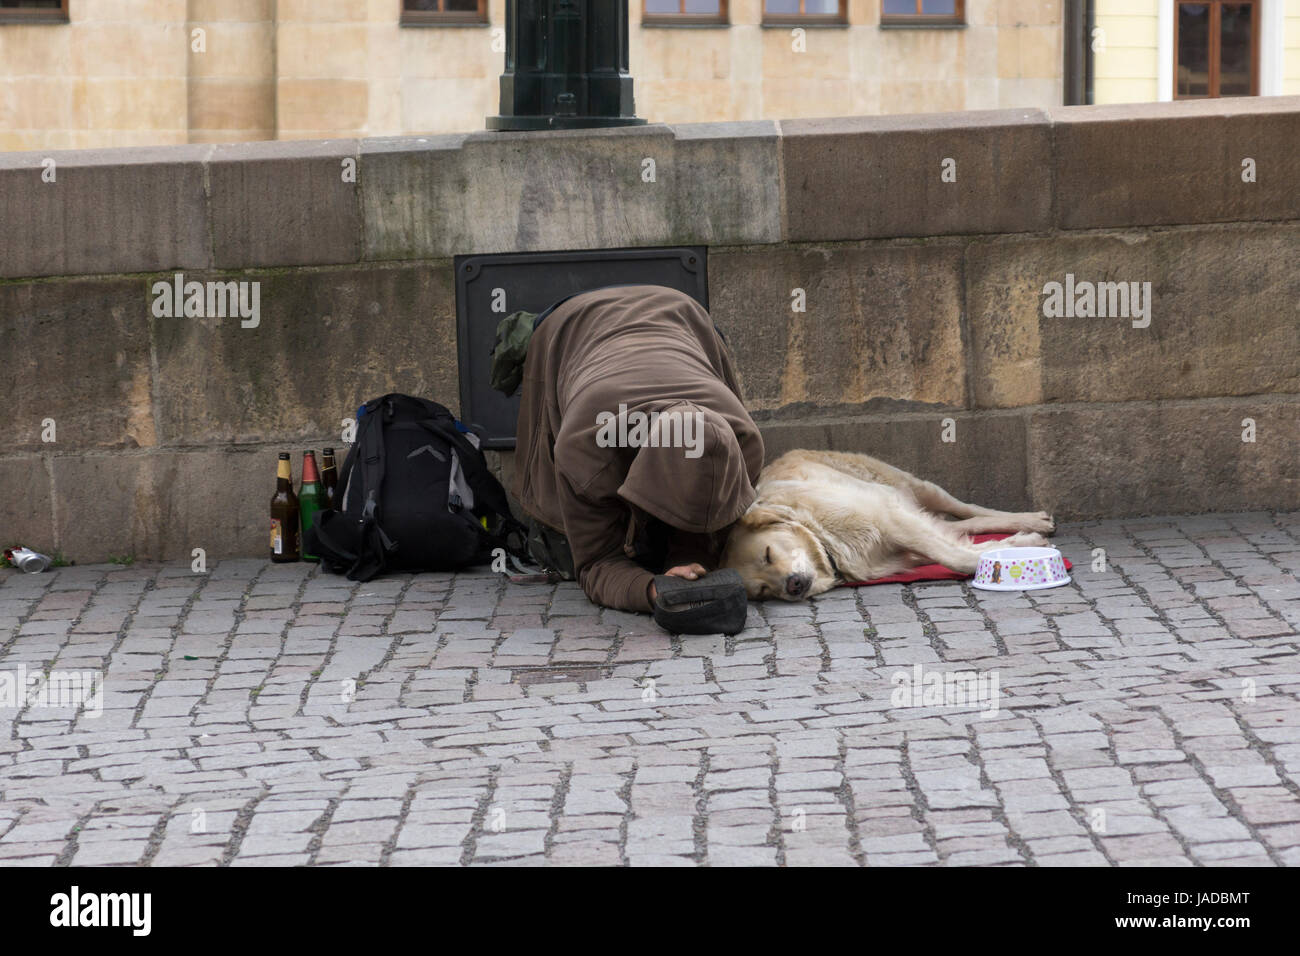 A beggar and his dog on the approach to Charles Bridge, Prague, Czech Republic - Stock Image